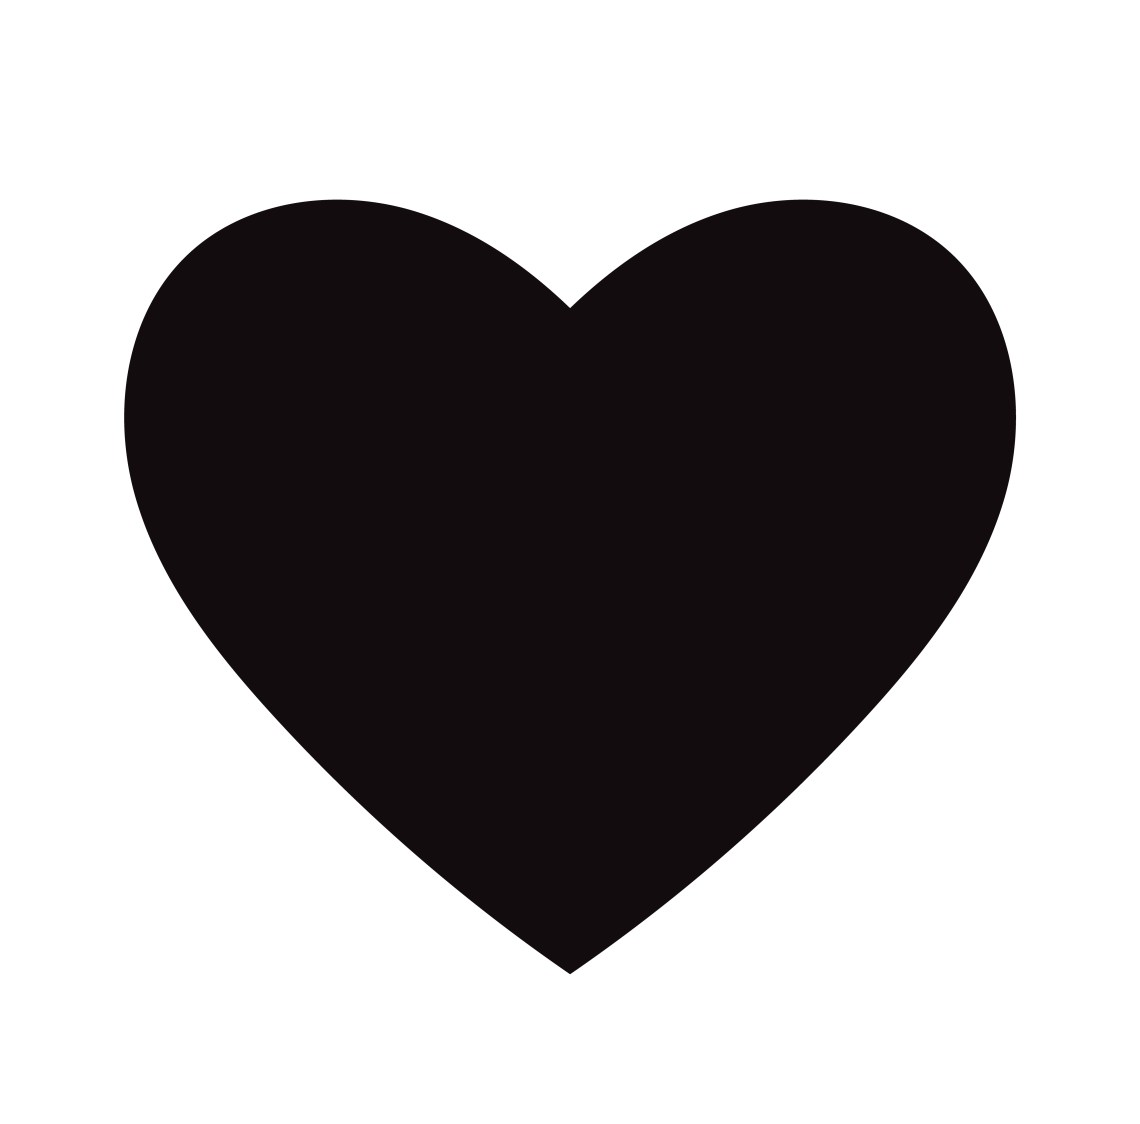 Download Flat Black Heart Icon Isolated on White Background. Vector ...